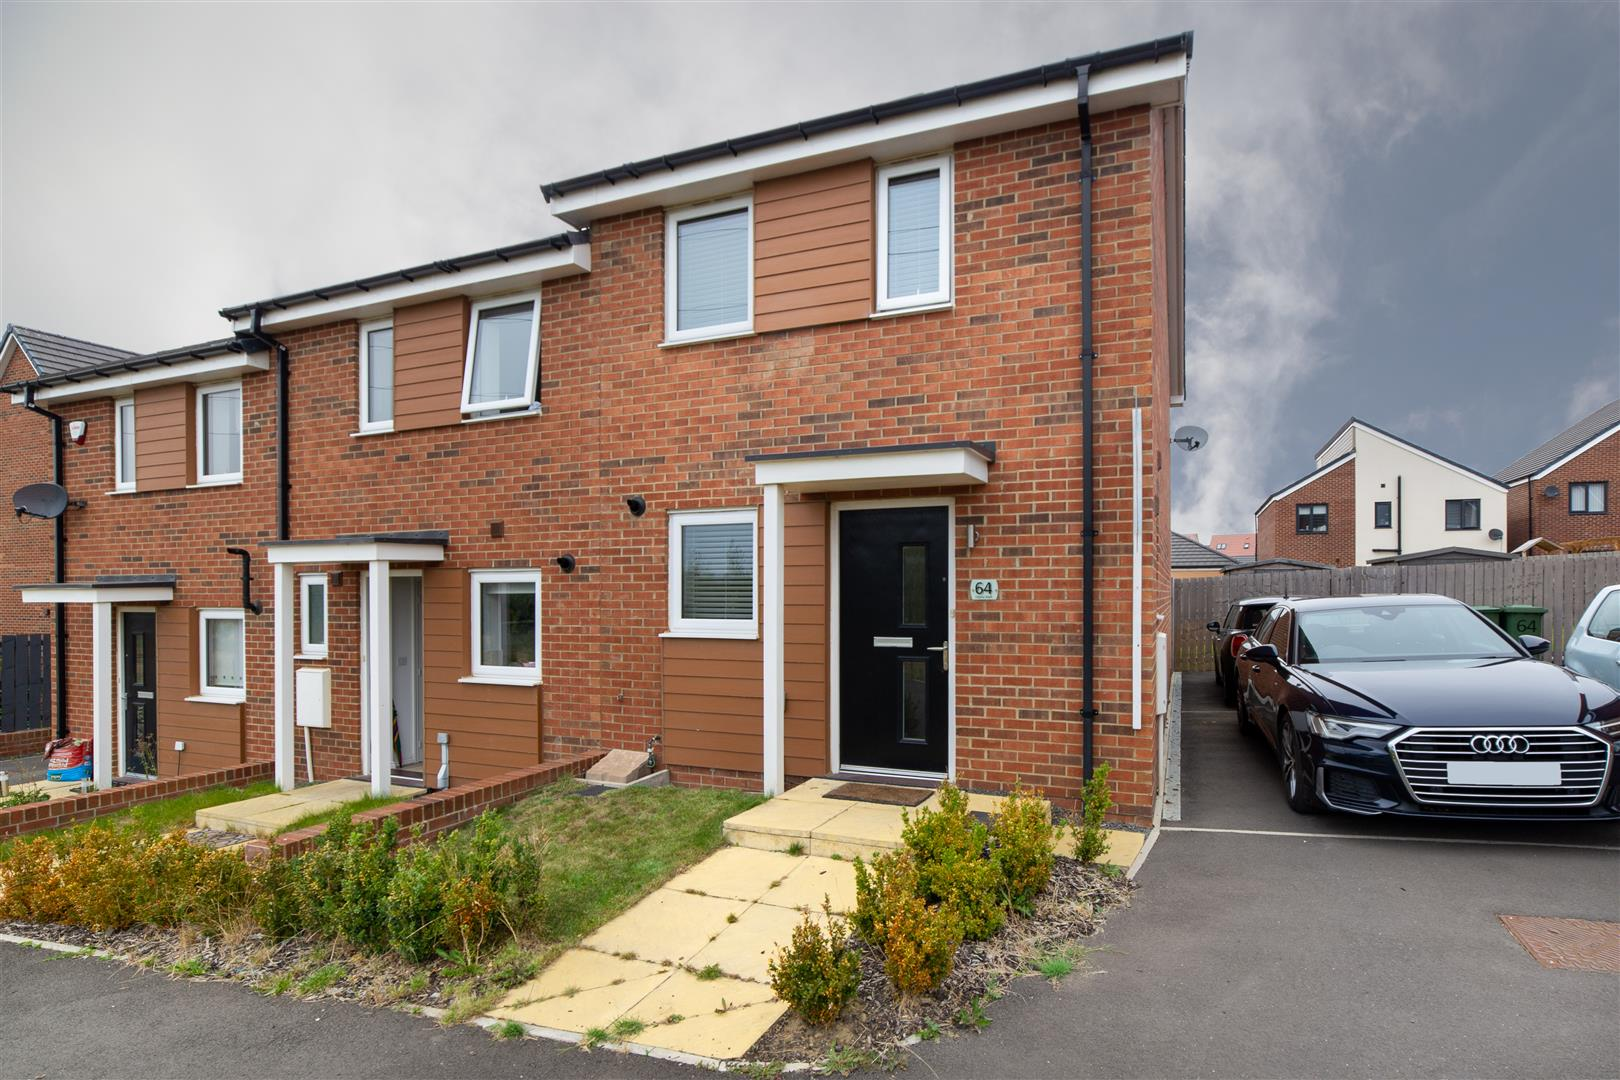 2 bed semi-detached house for sale in Newcastle Upon Tyne, NE13 9DW - Property Image 1